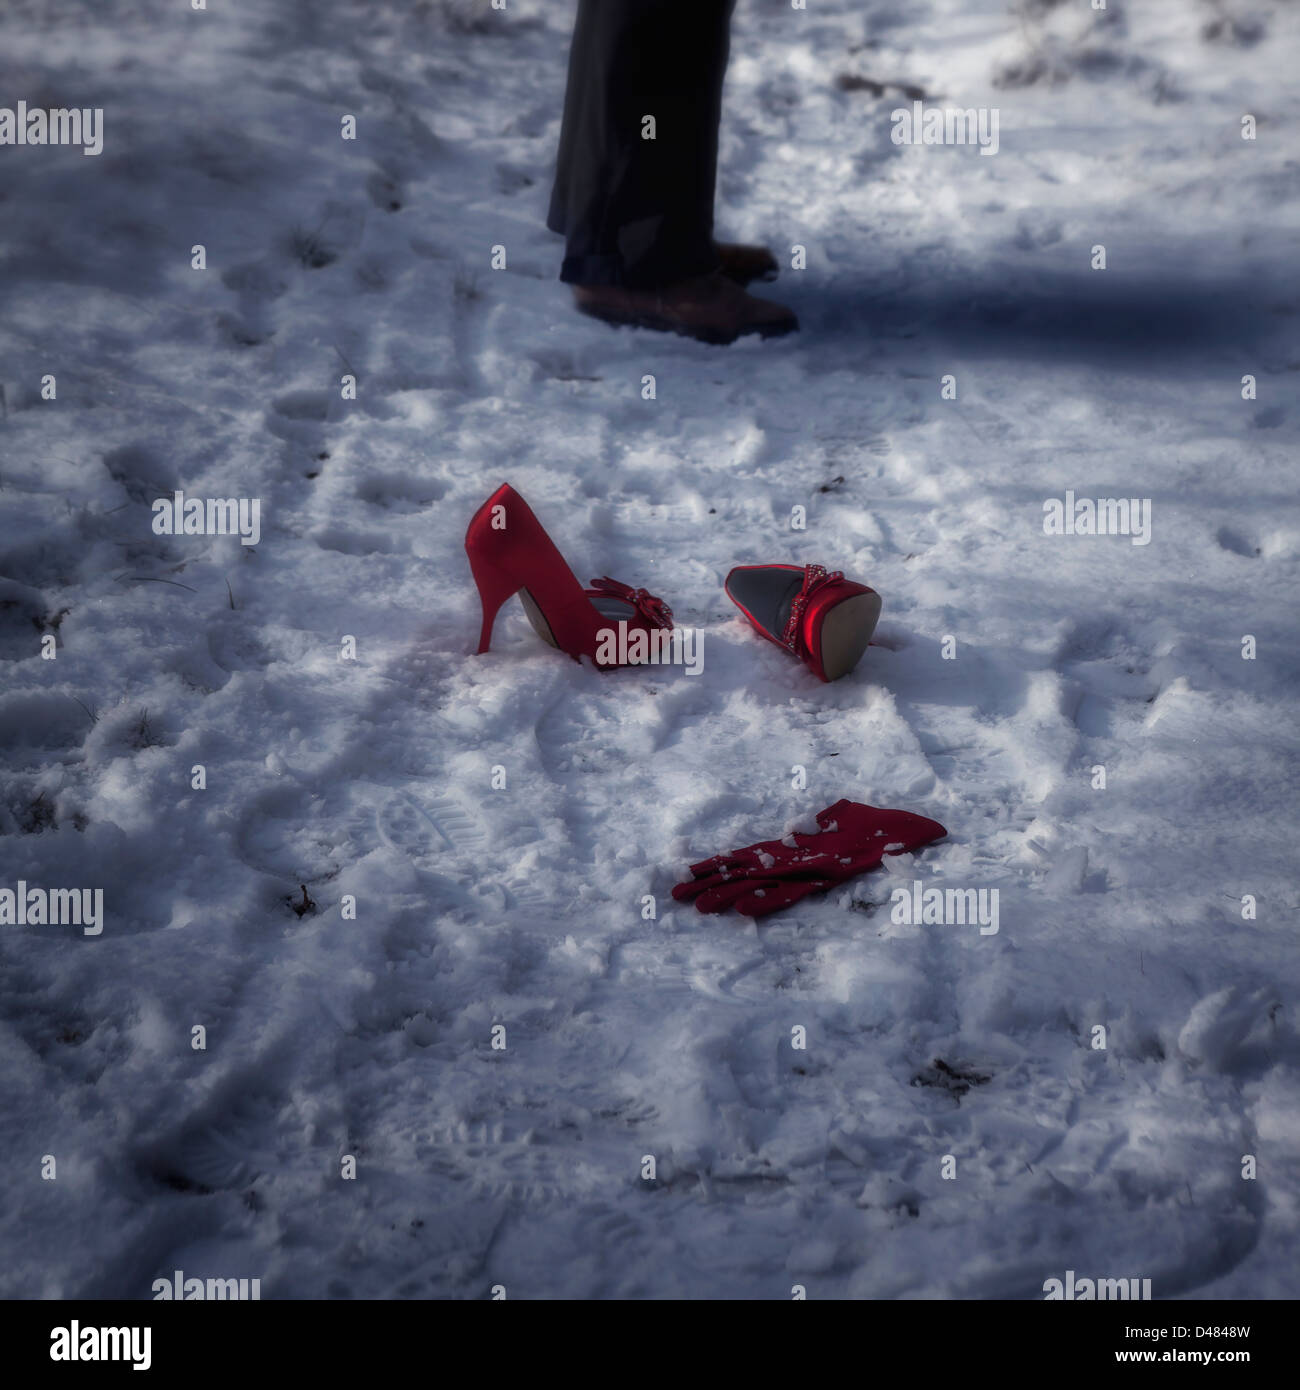 red high heels and a glove in snow, a man is standing beside - Stock Image